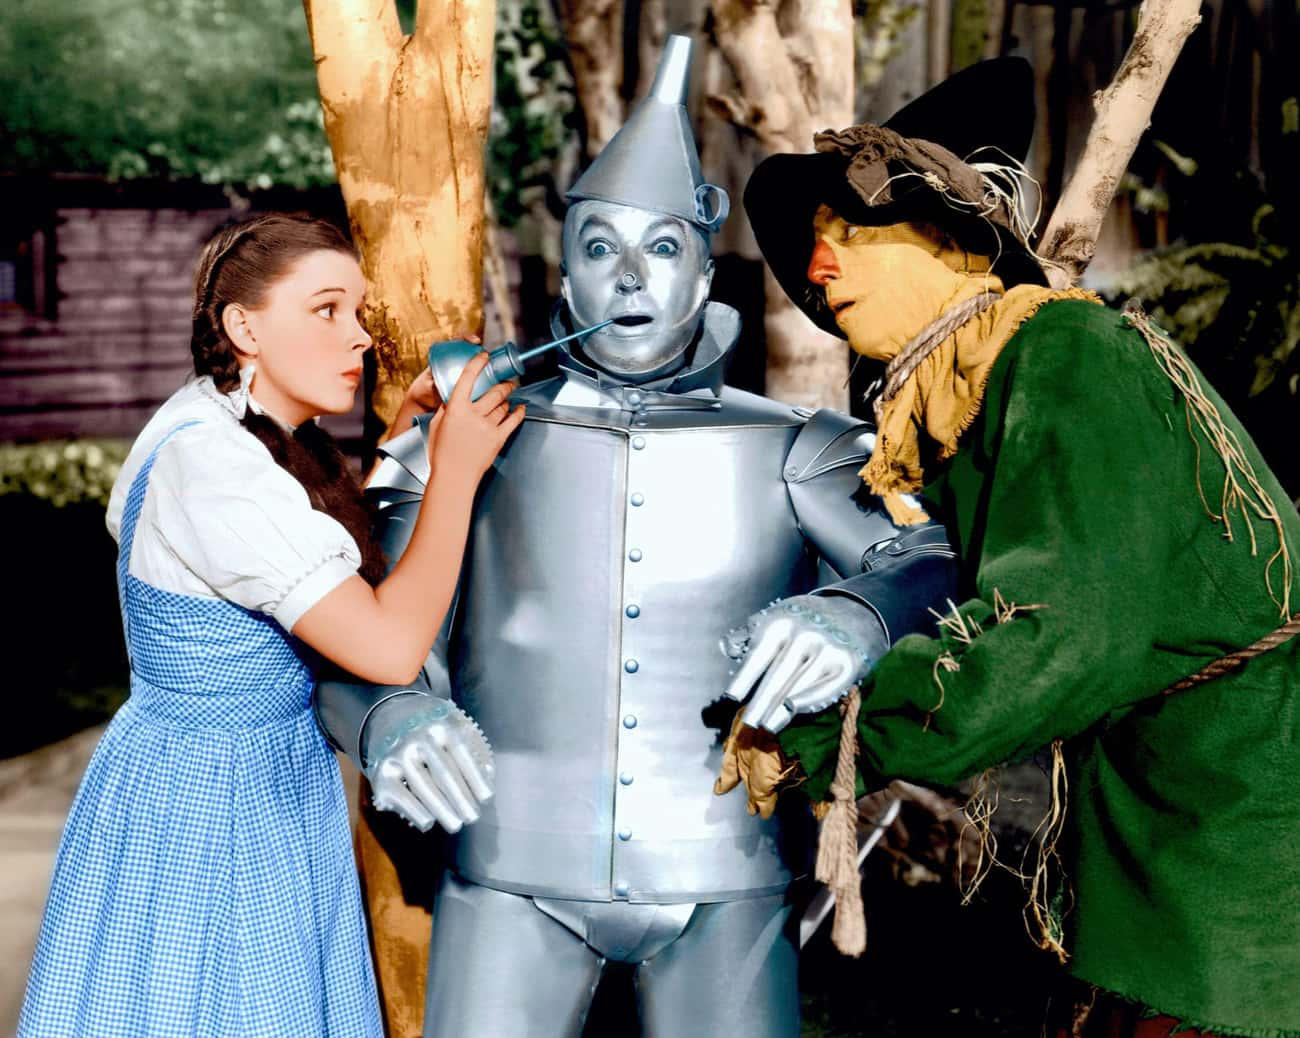 The Tin Man Is The Mistreated  is listed (or ranked) 4 on the list The Secret Political Symbolism You Never Knew Was Hidden Within The Wizard Of Oz